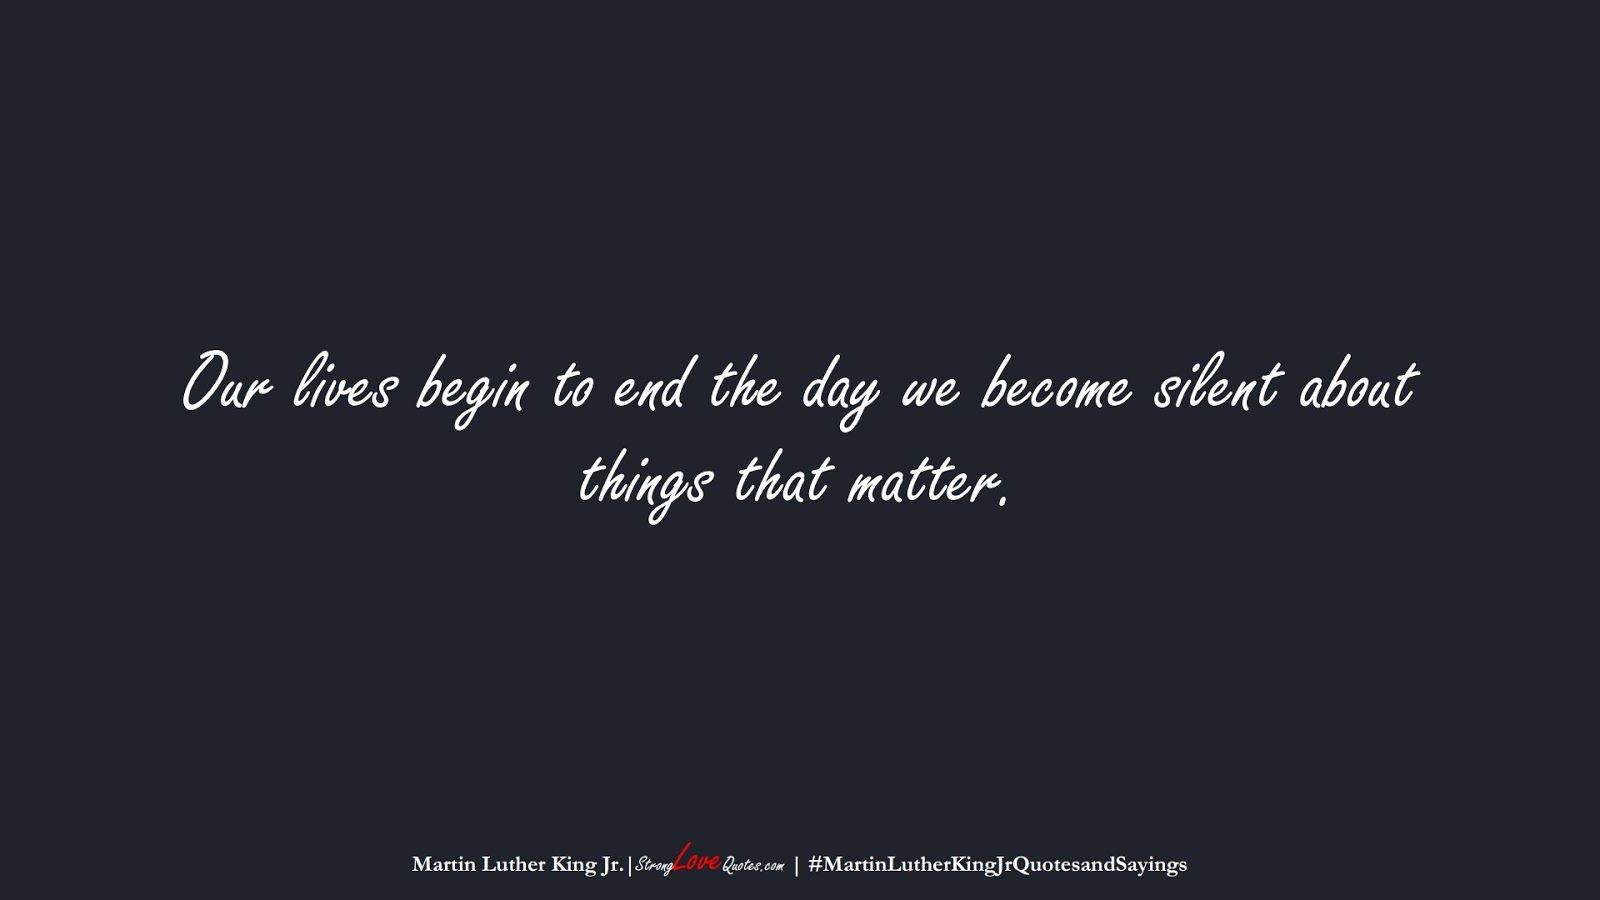 Our lives begin to end the day we become silent about things that matter. (Martin Luther King Jr.);  #MartinLutherKingJrQuotesandSayings